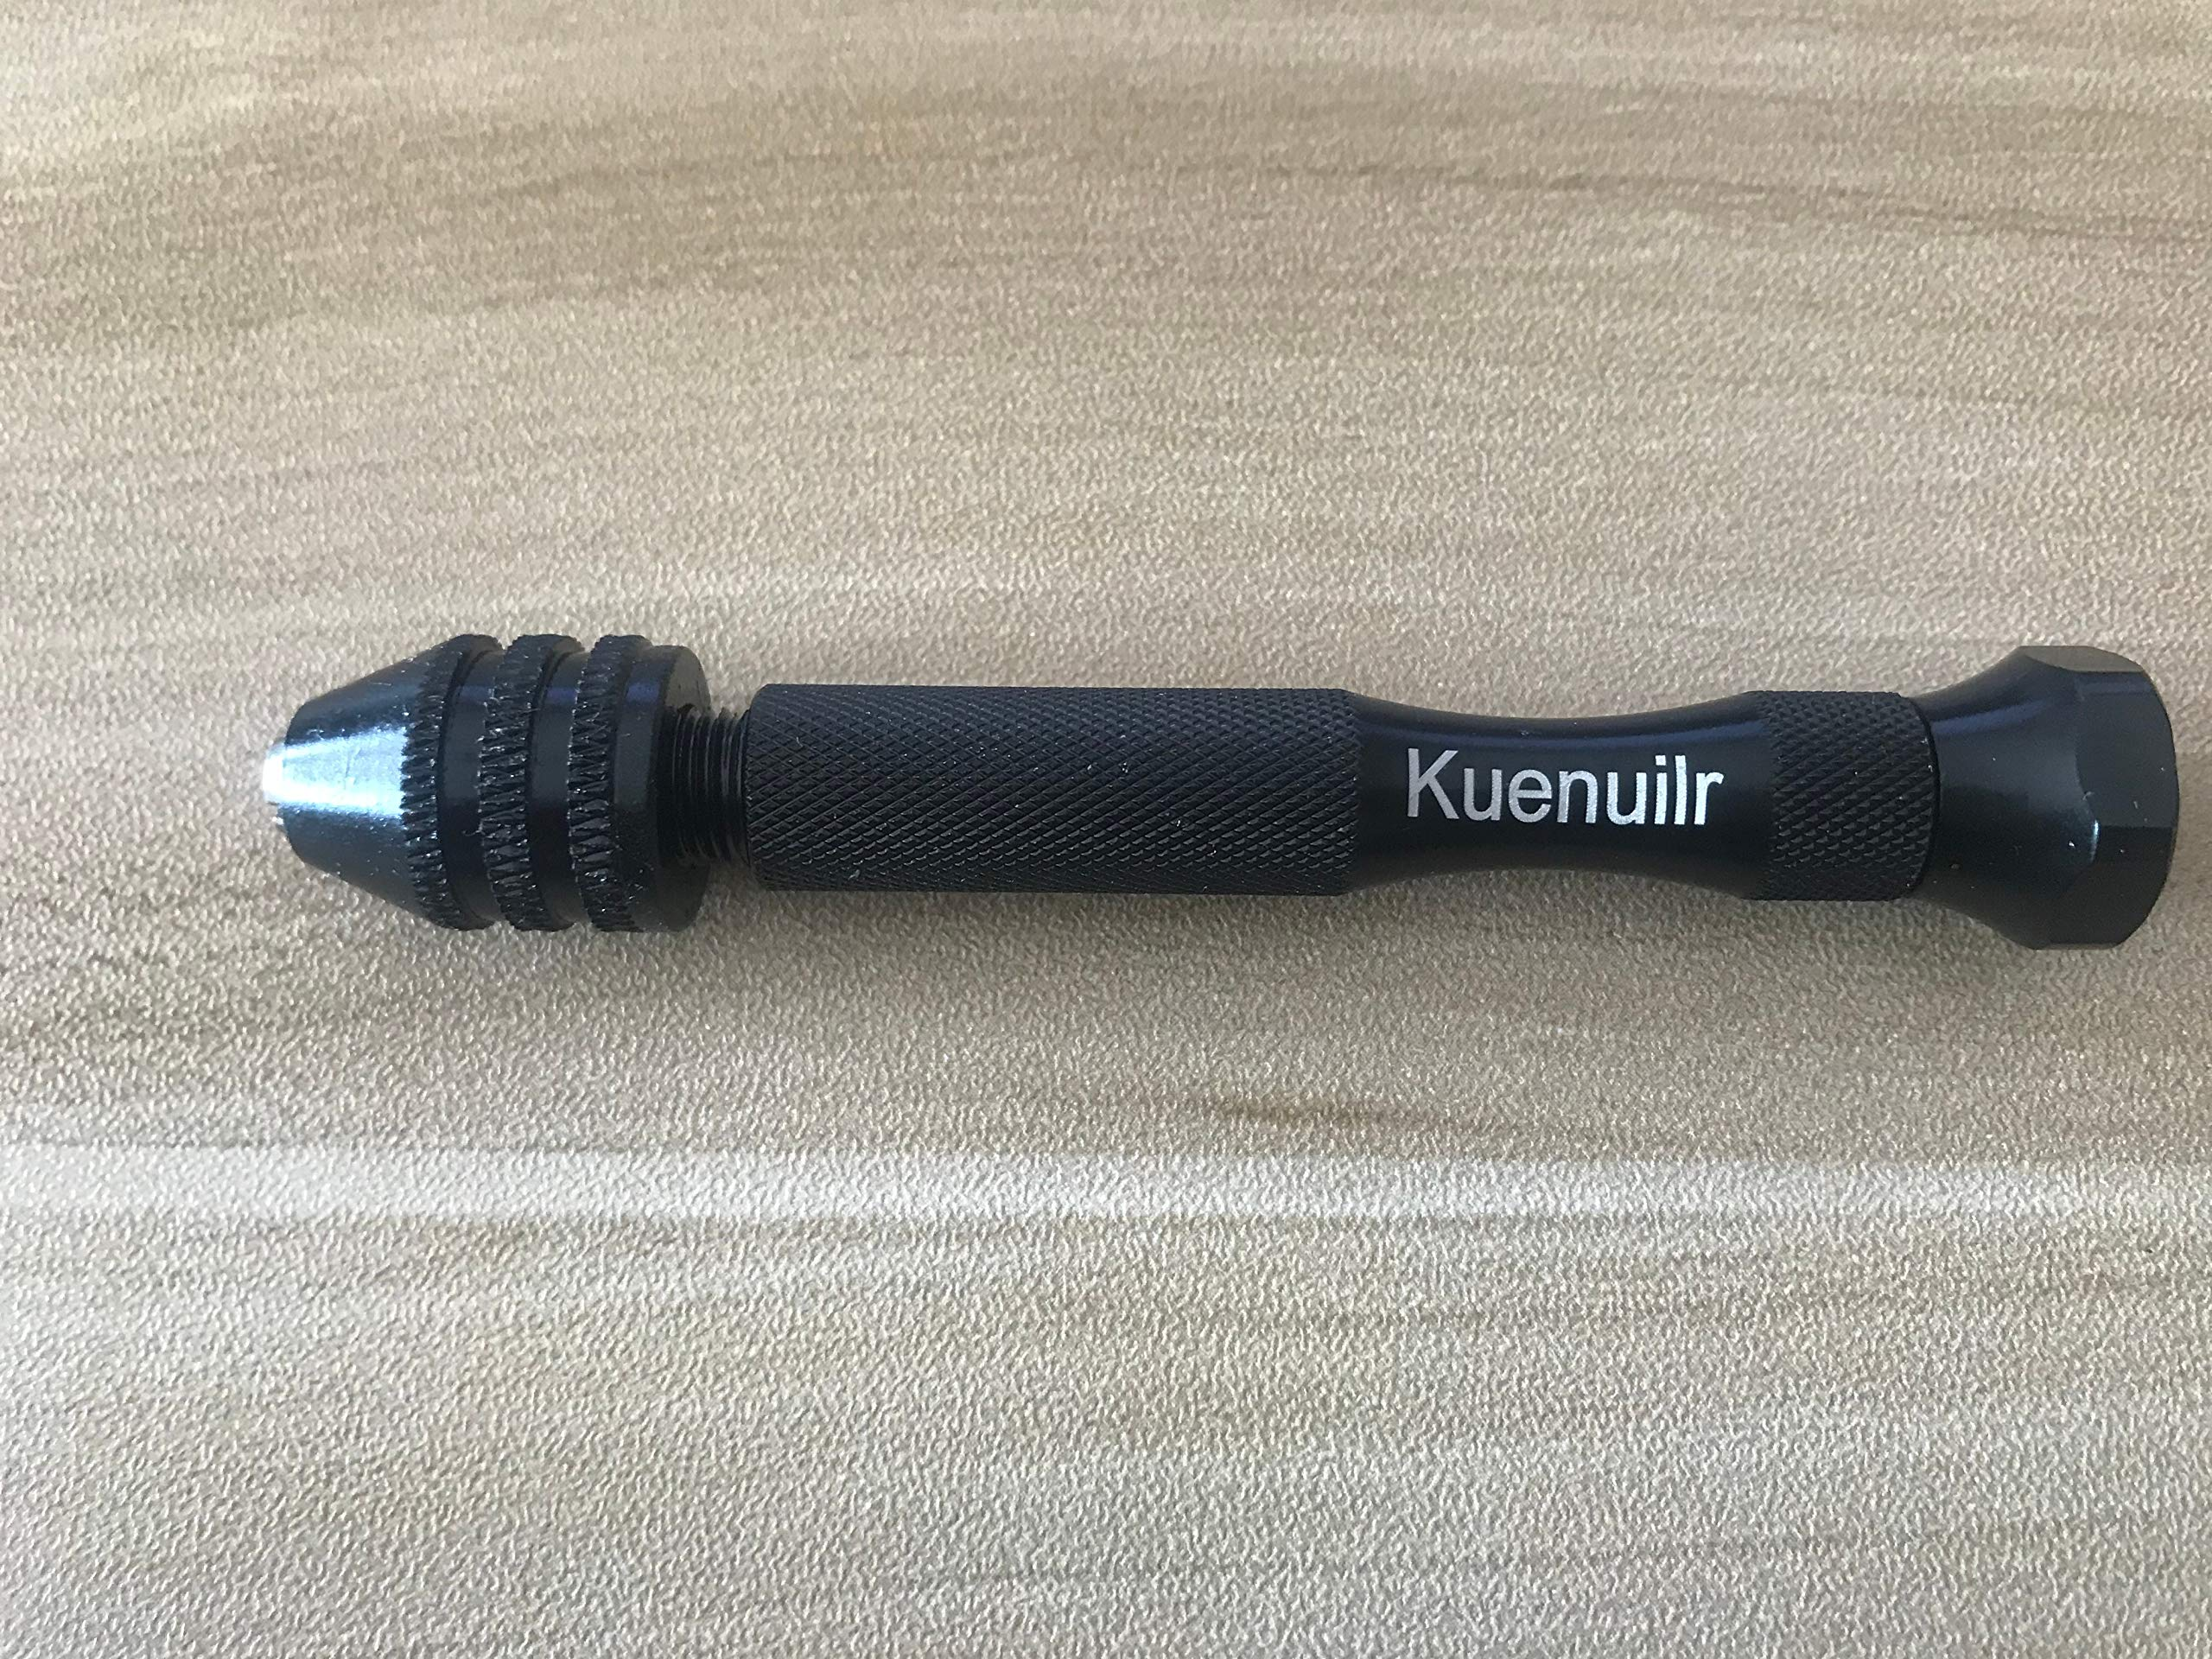 Kuenuilr Pin Vise Hand Drill with Twist Drill Bits by Kuenuilr